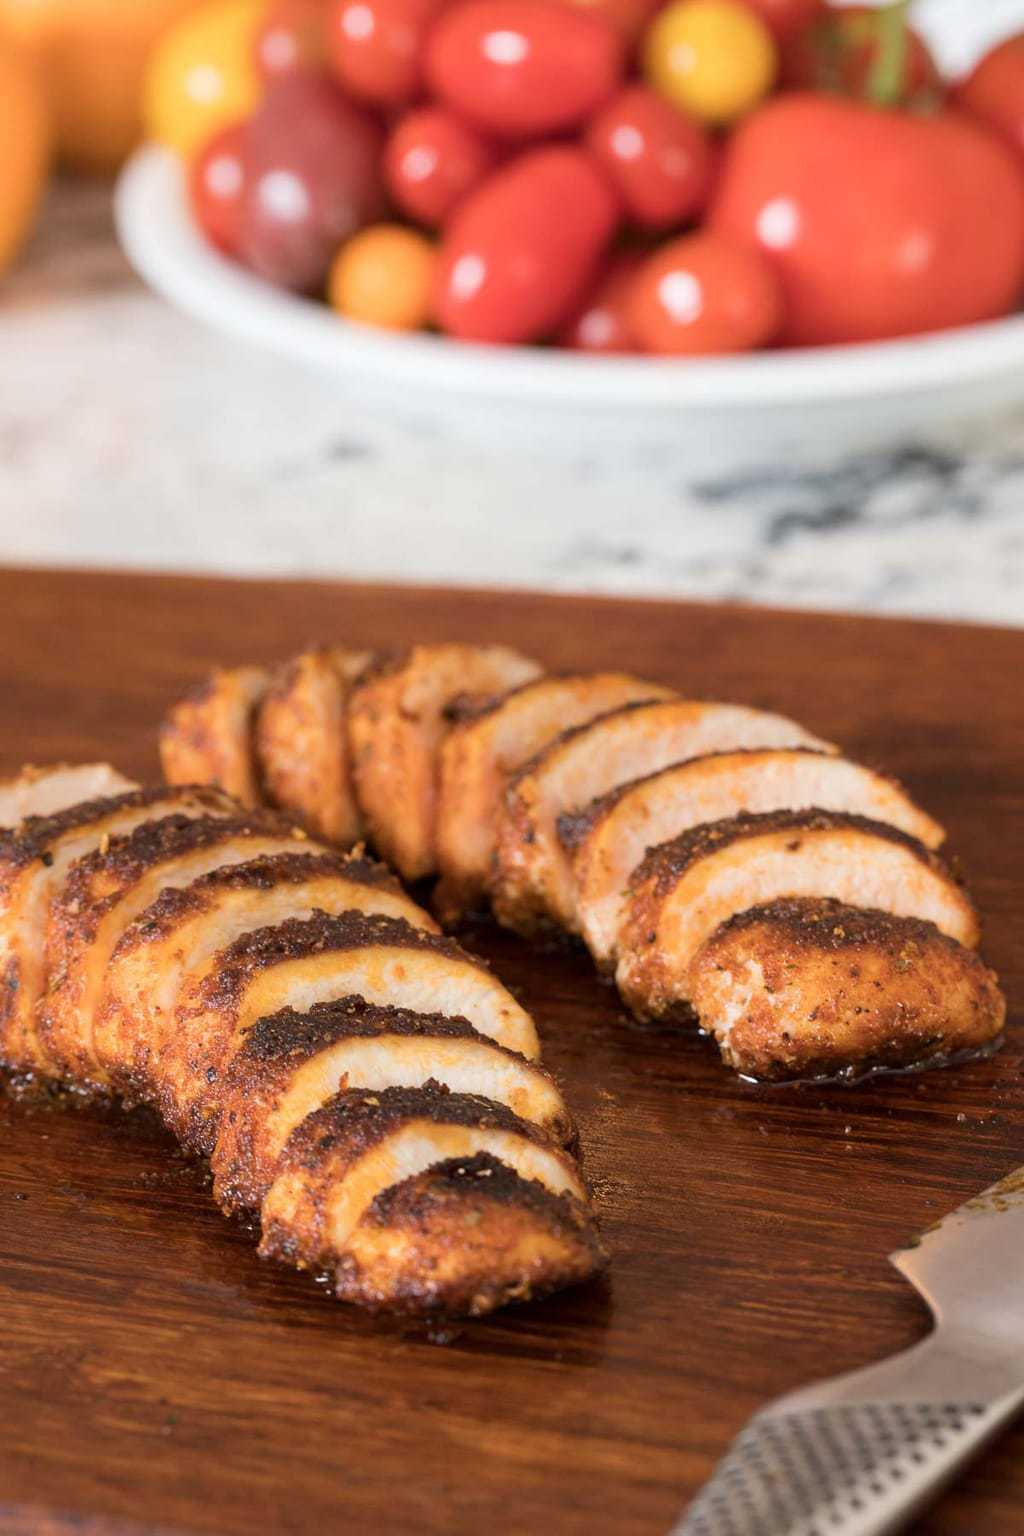 Photo of two Restaurant Style Sautéed Chicken Breasts sliced diagonally on a dark brown cutting board. A bowl of fresh tomatoes is in the background.